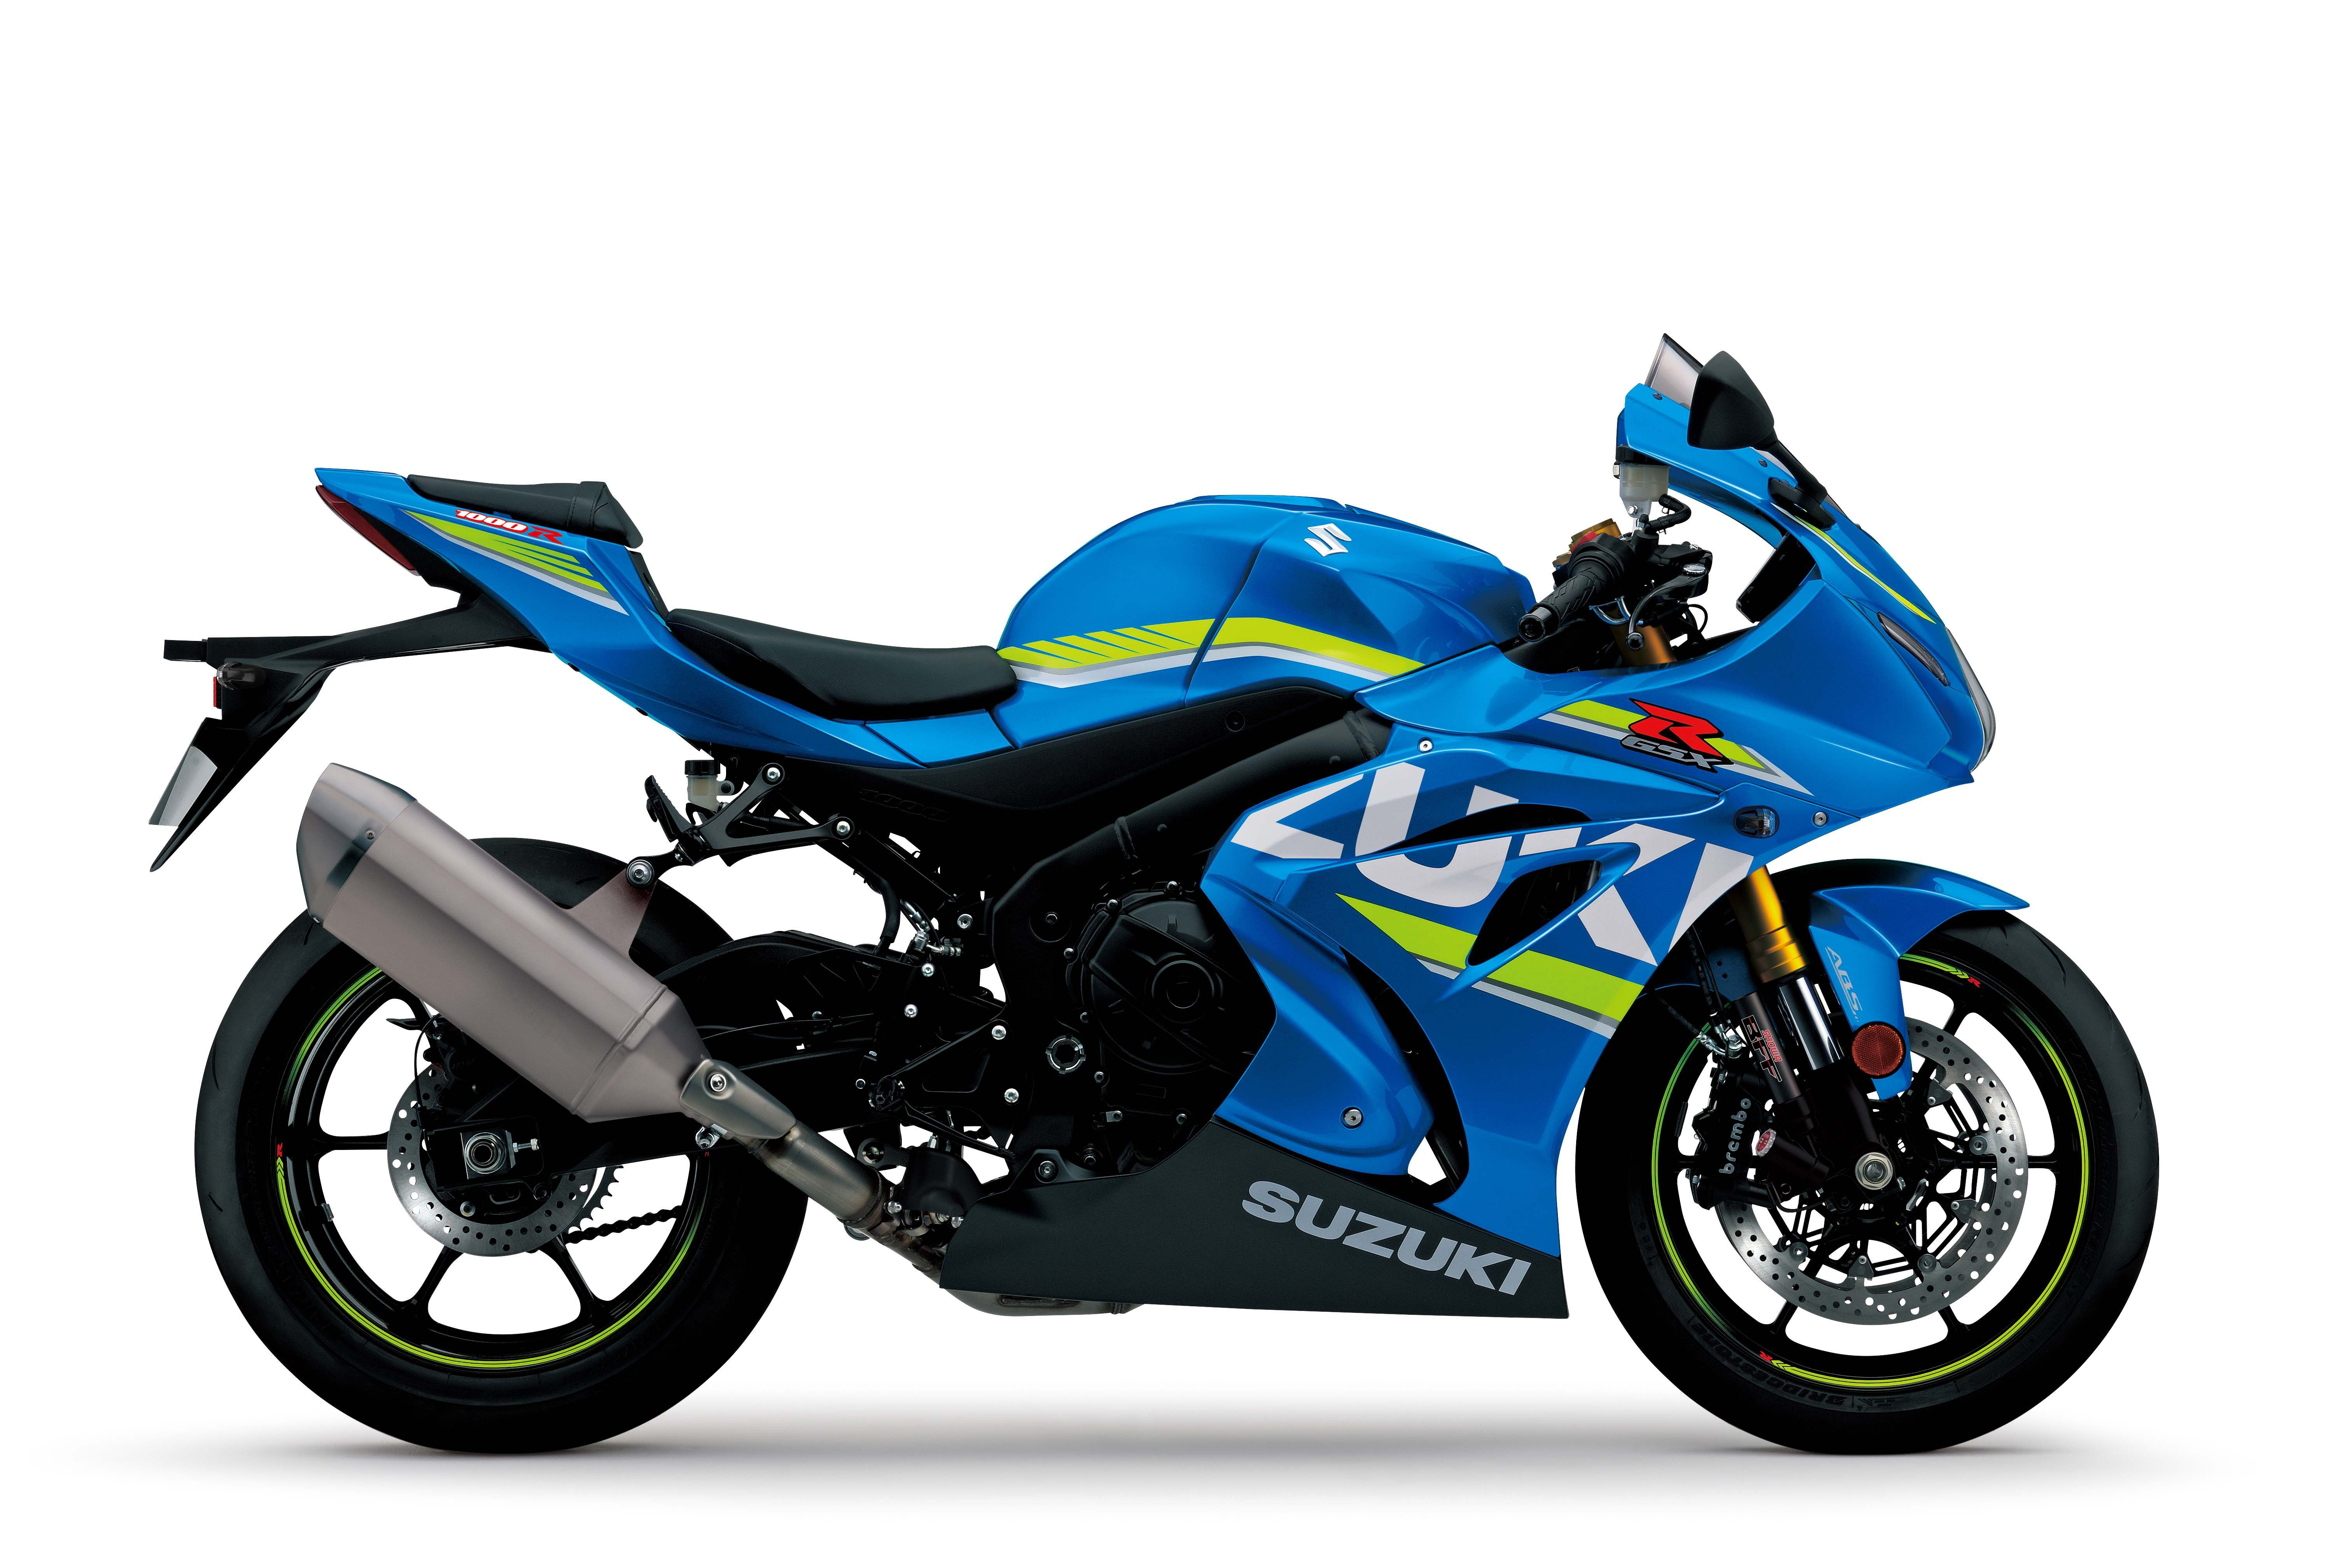 Here is What the 2016 Suzuki GSX-R1000 Will Look Like